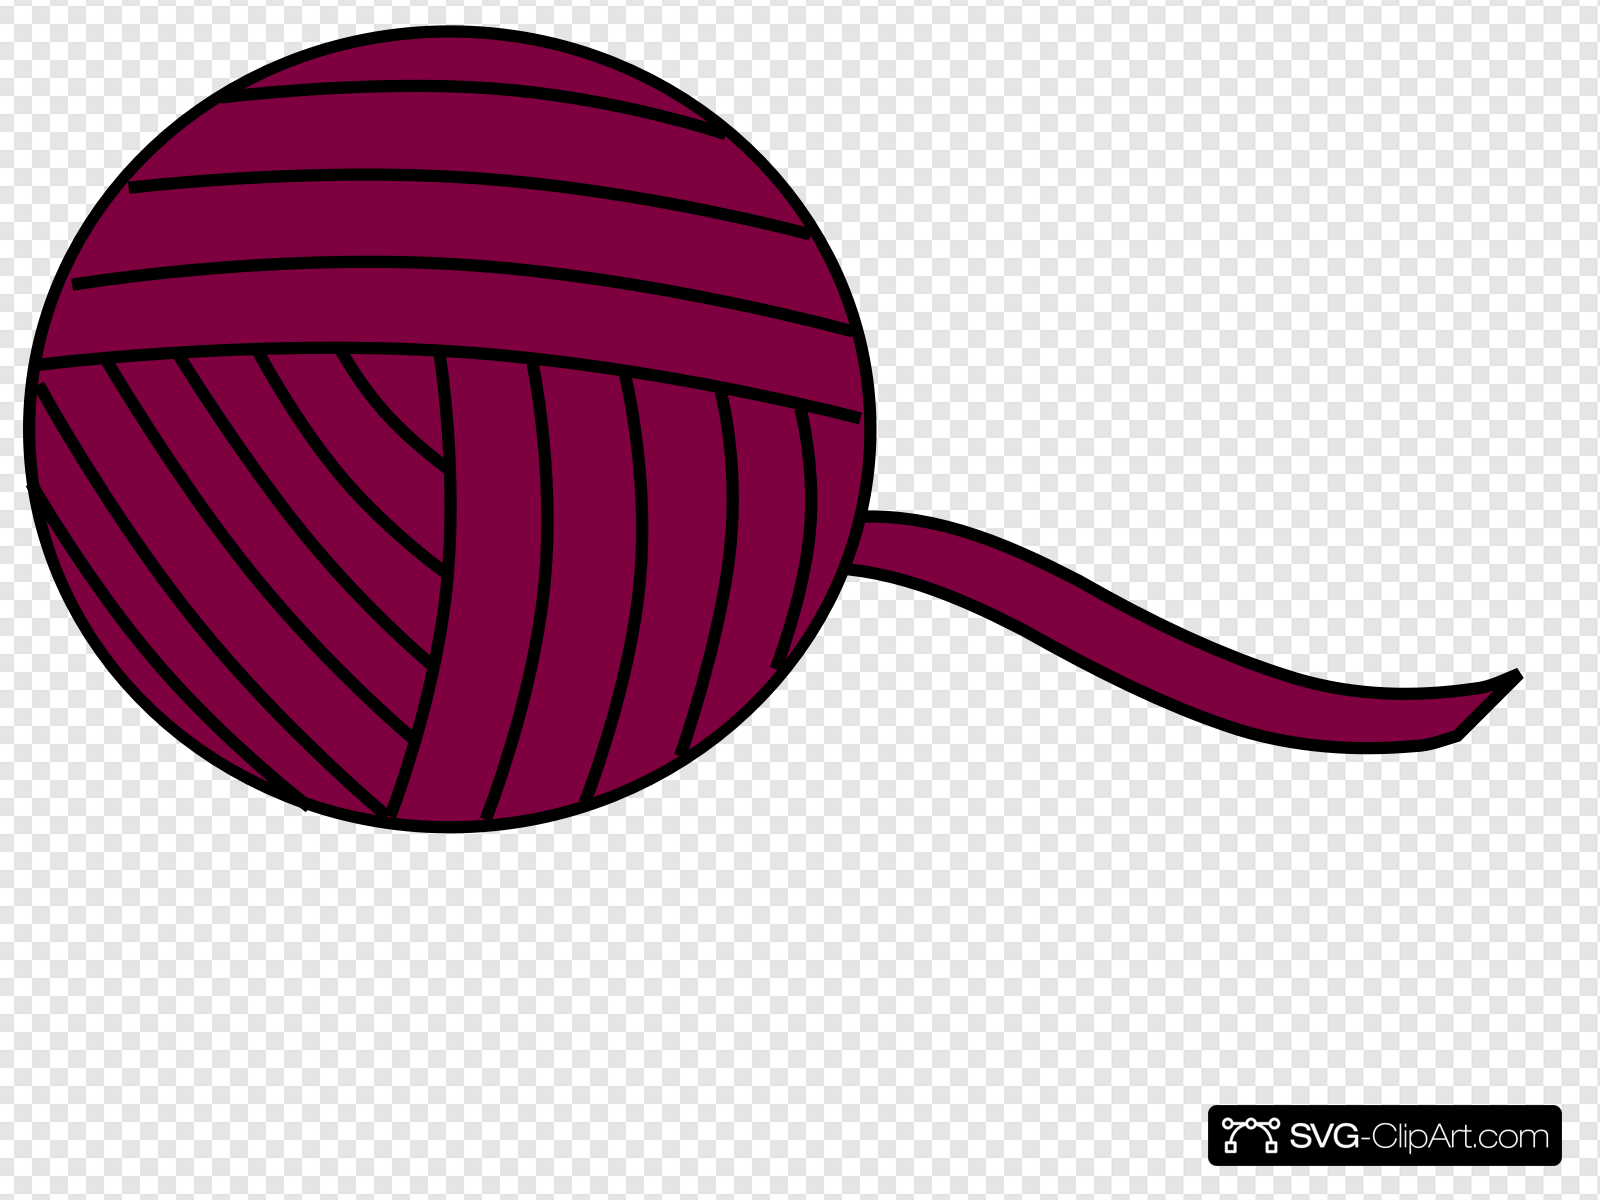 Yarn clipart purple clip transparent Purple Yarn Ball Clip art, Icon and SVG - SVG Clipart clip transparent